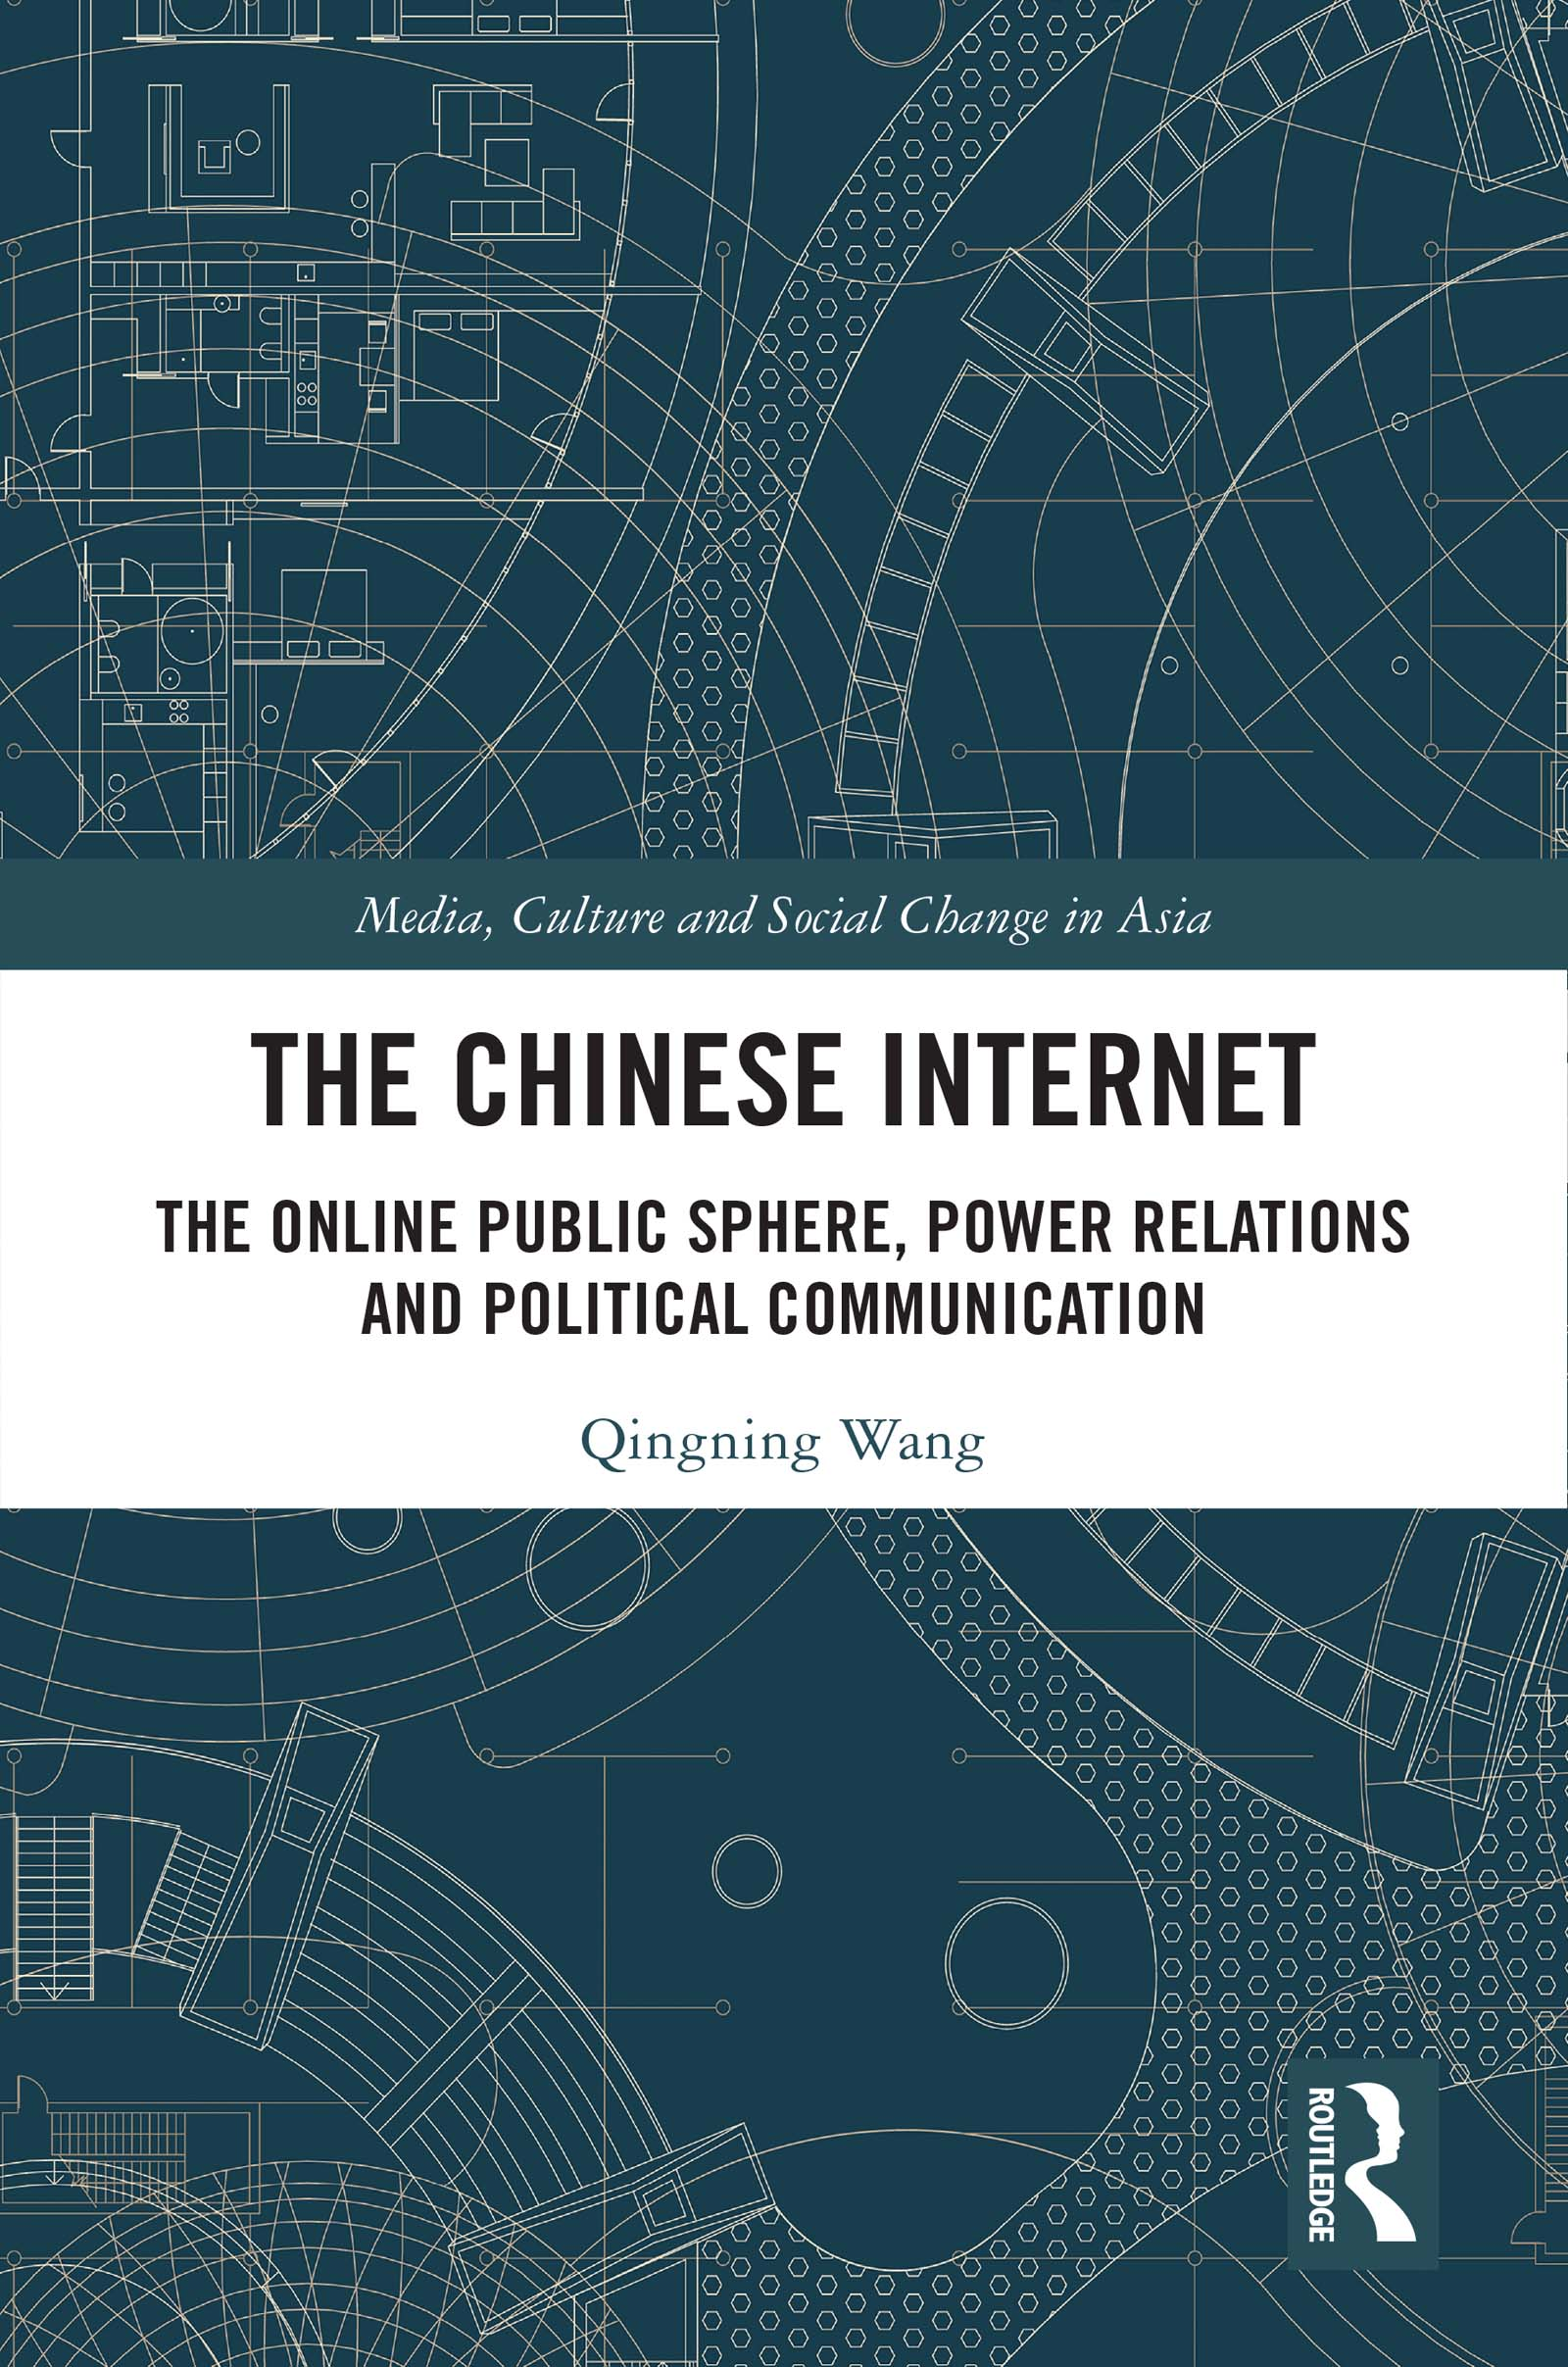 Online political communication in China